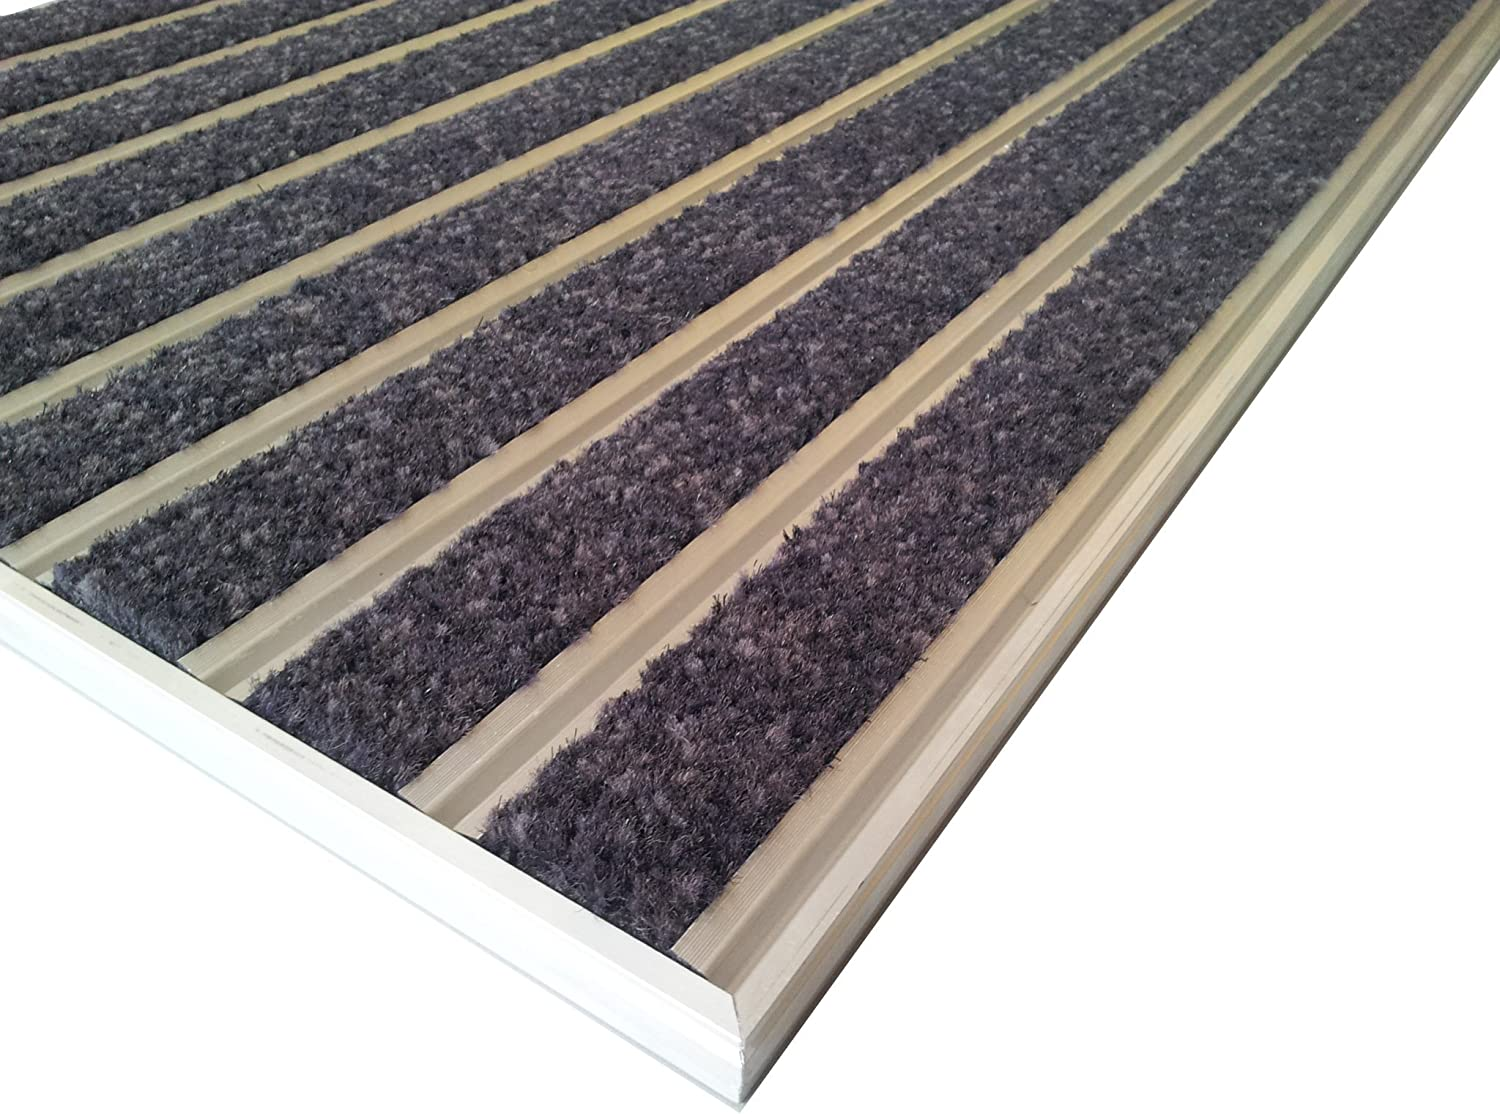 Anthracite Color. for recessed Installation in mat Well Size 70 x 50 cm Including matwell Frame Professional Aluminium Entrance Matting System HD60 Carpet